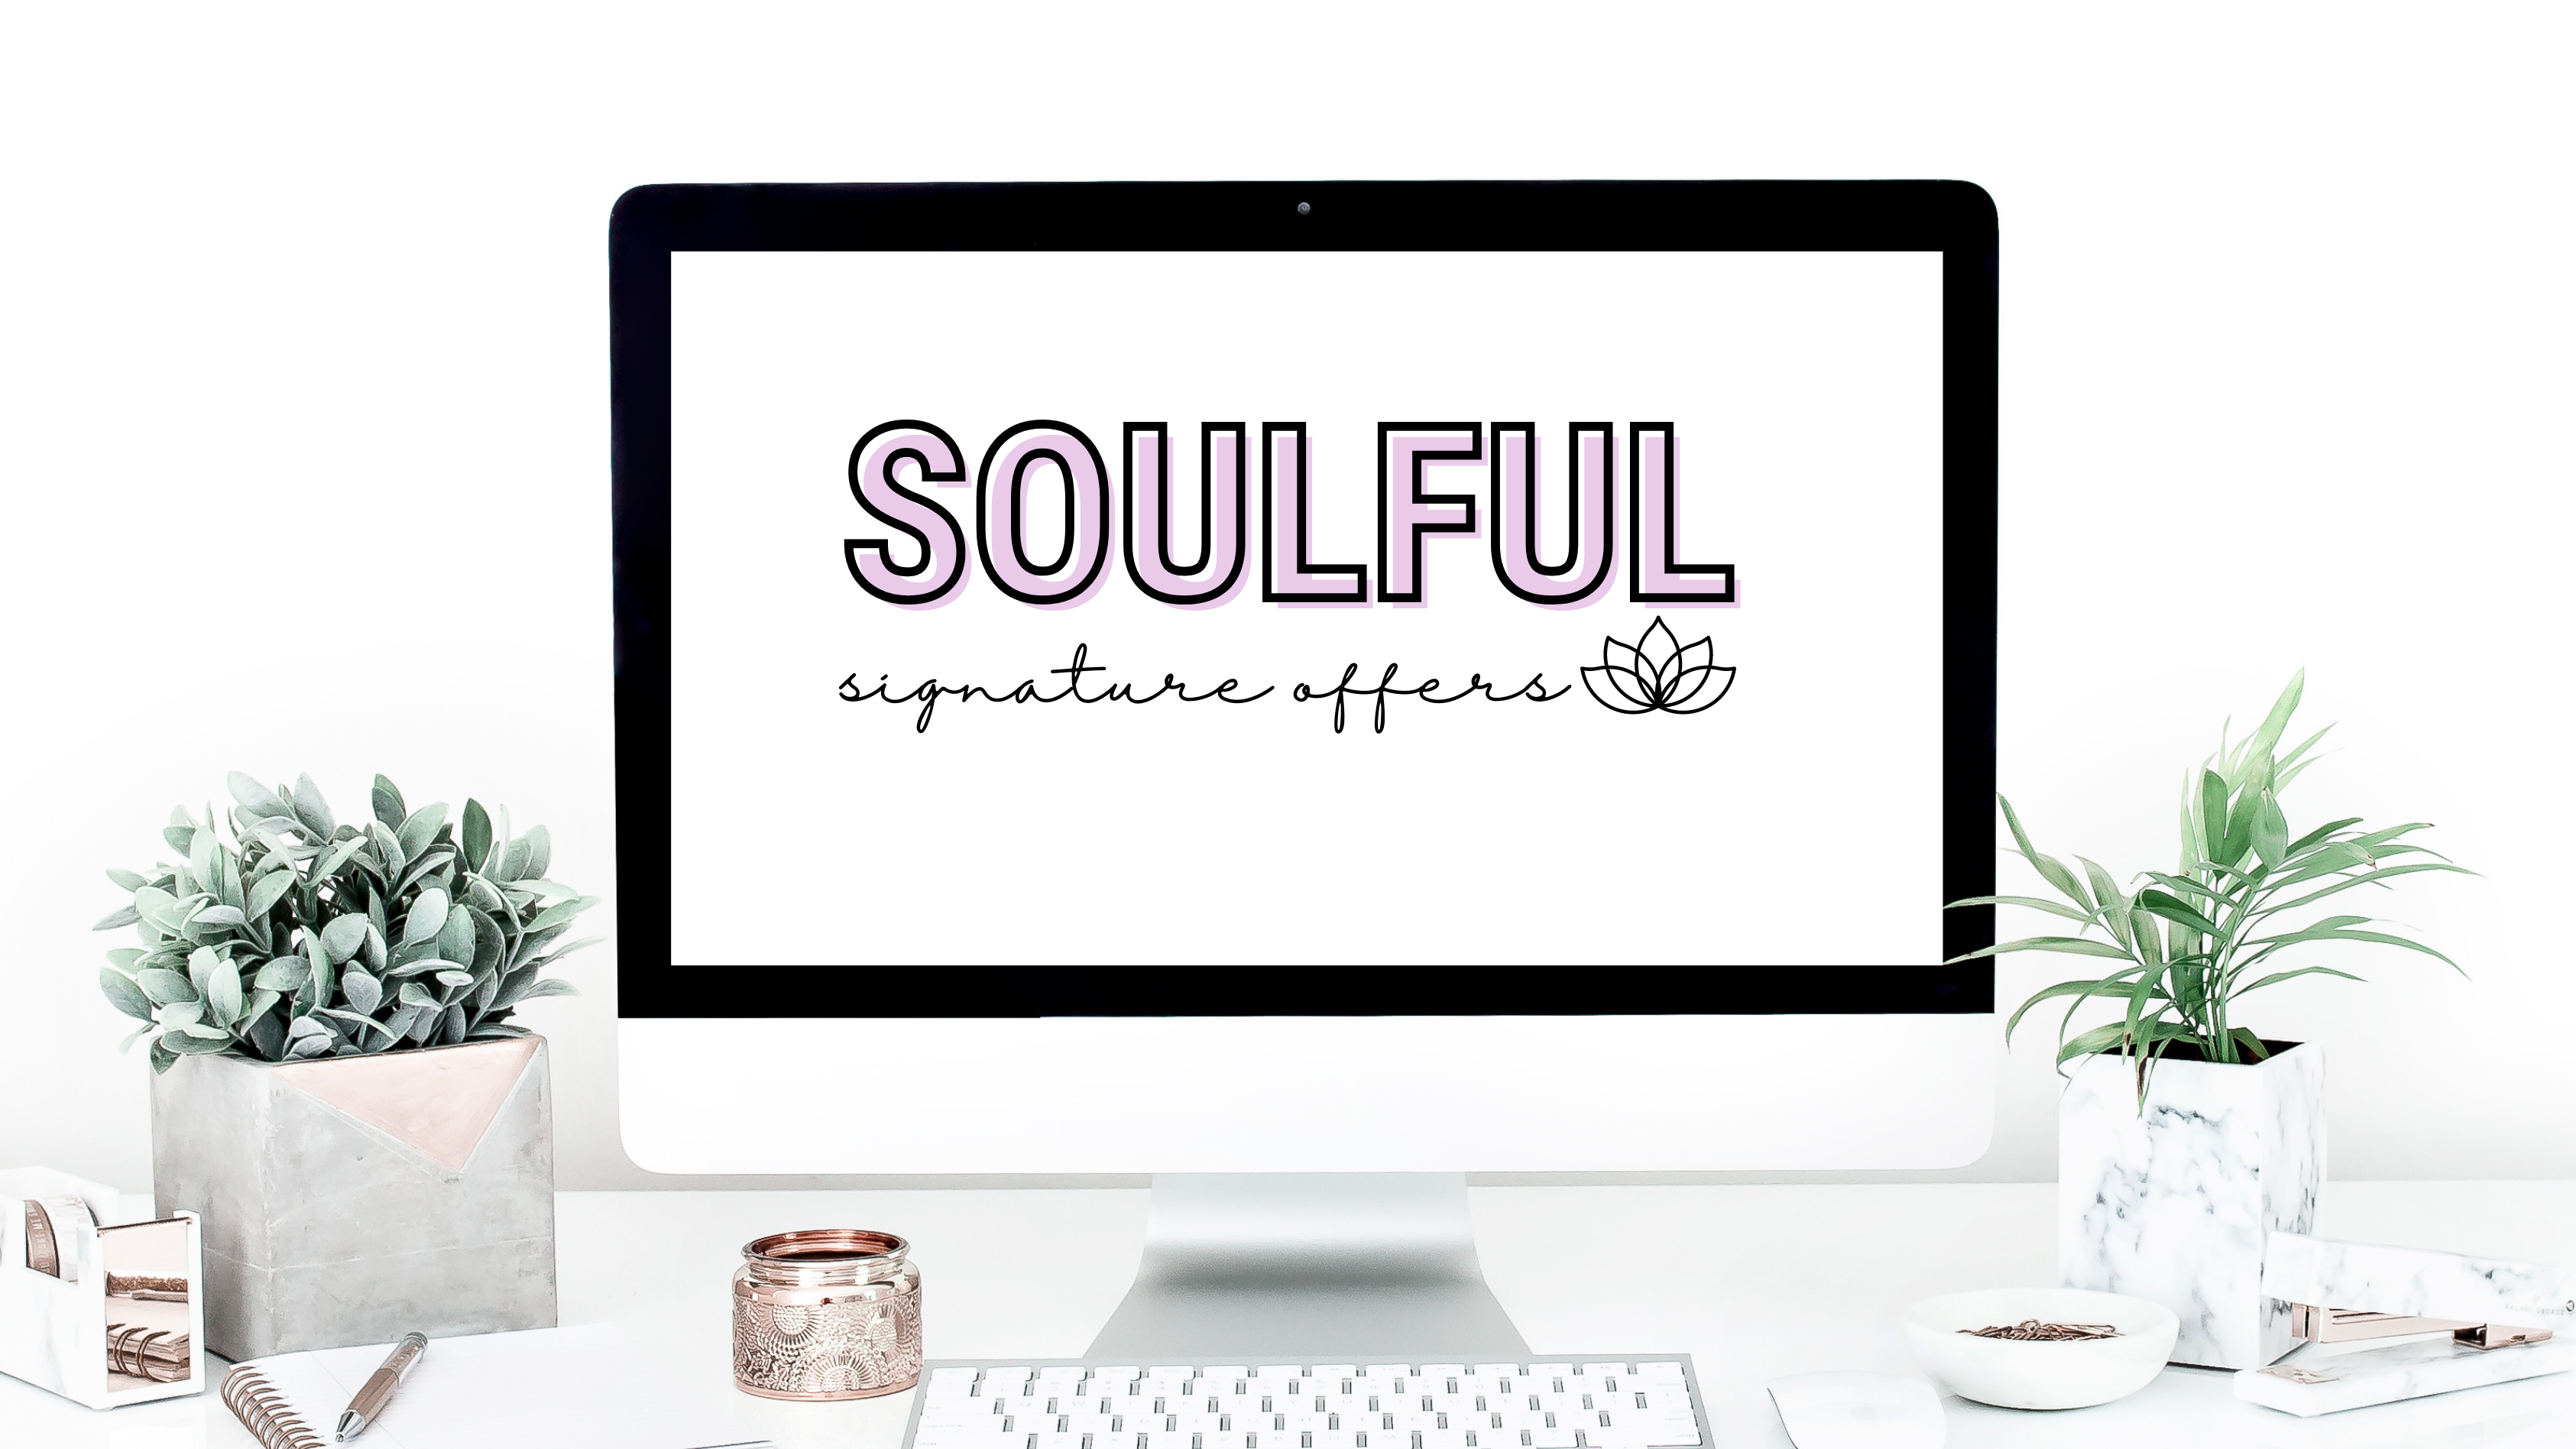 Soulful Signature Offers